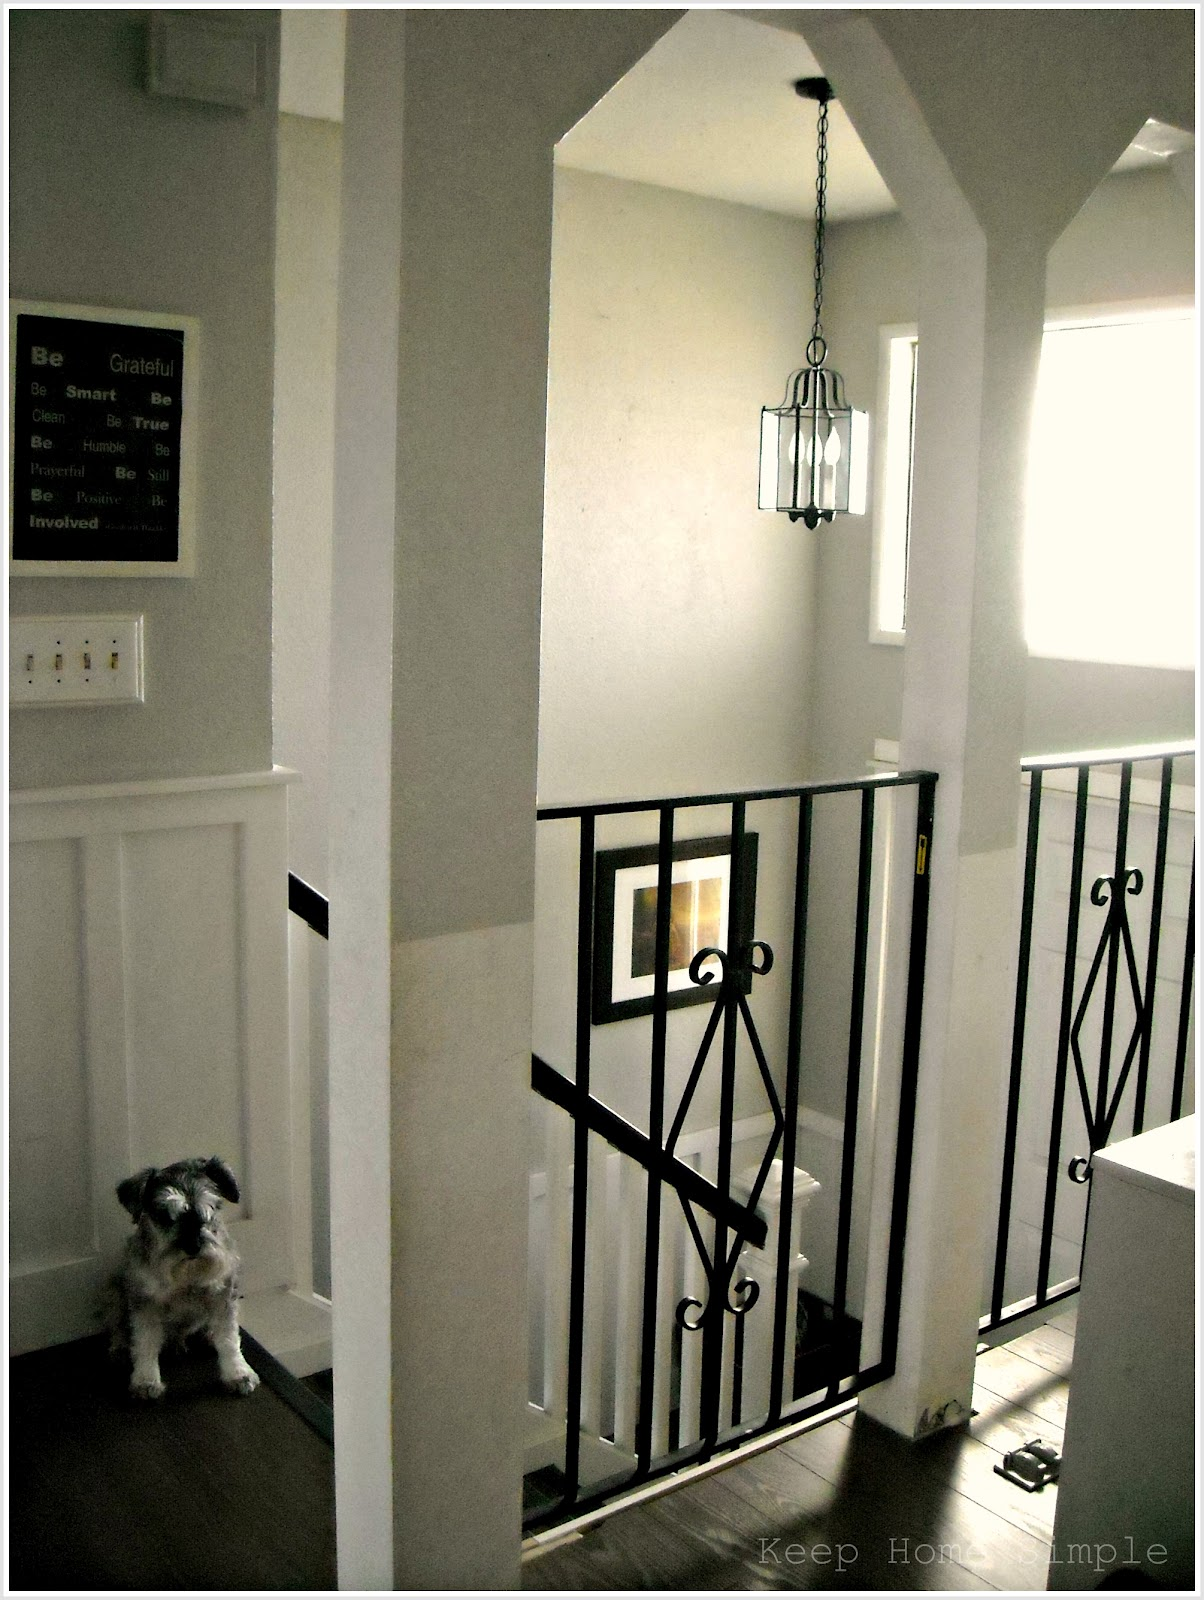 Keep Home Simple: New Entry Light